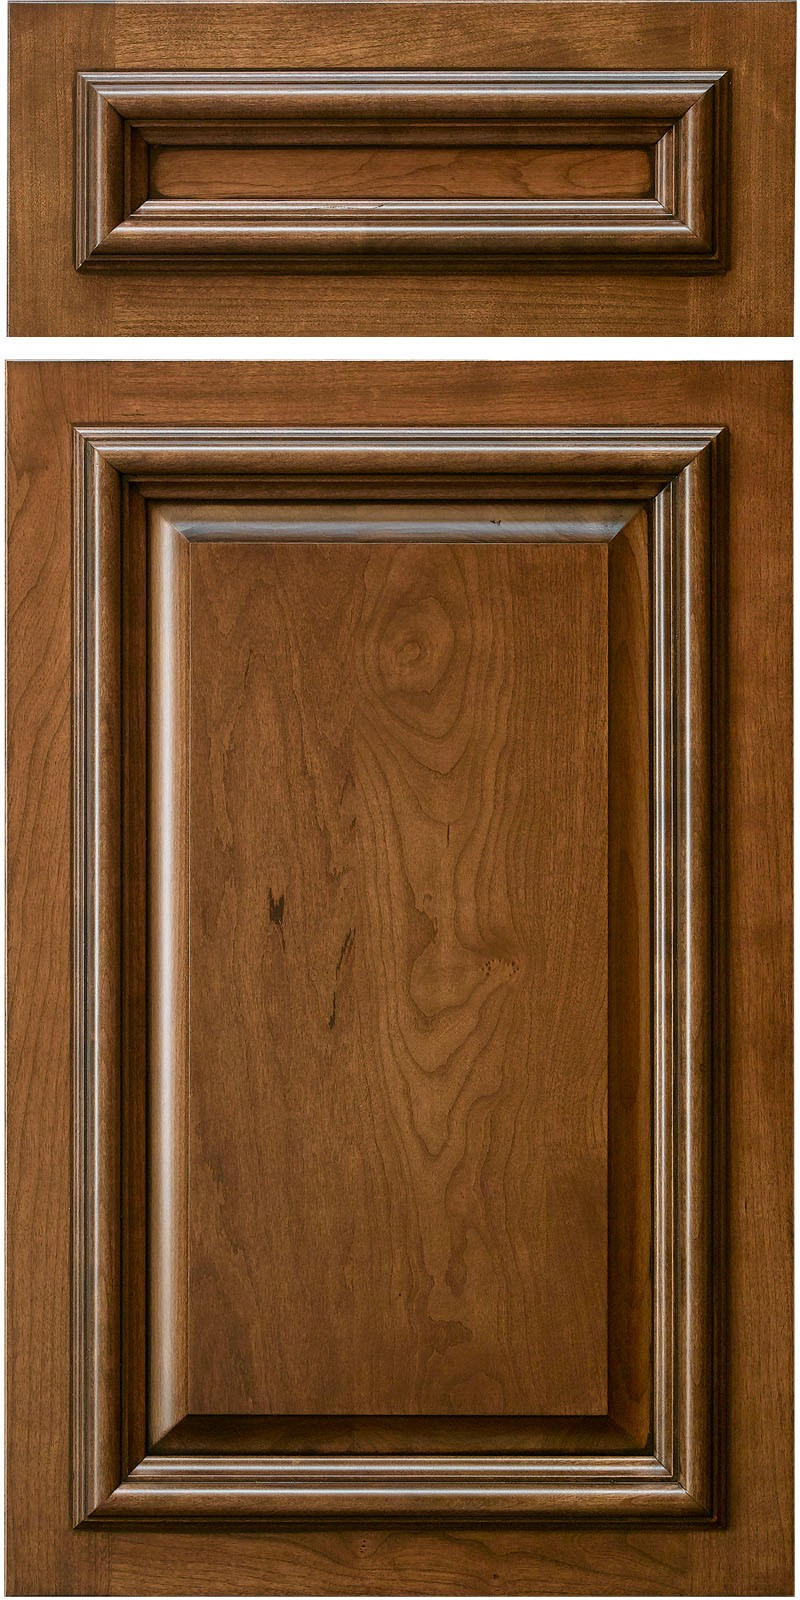 Crp10209 Solid Wood Materials Cabinet Doors Drawer Fronts Products